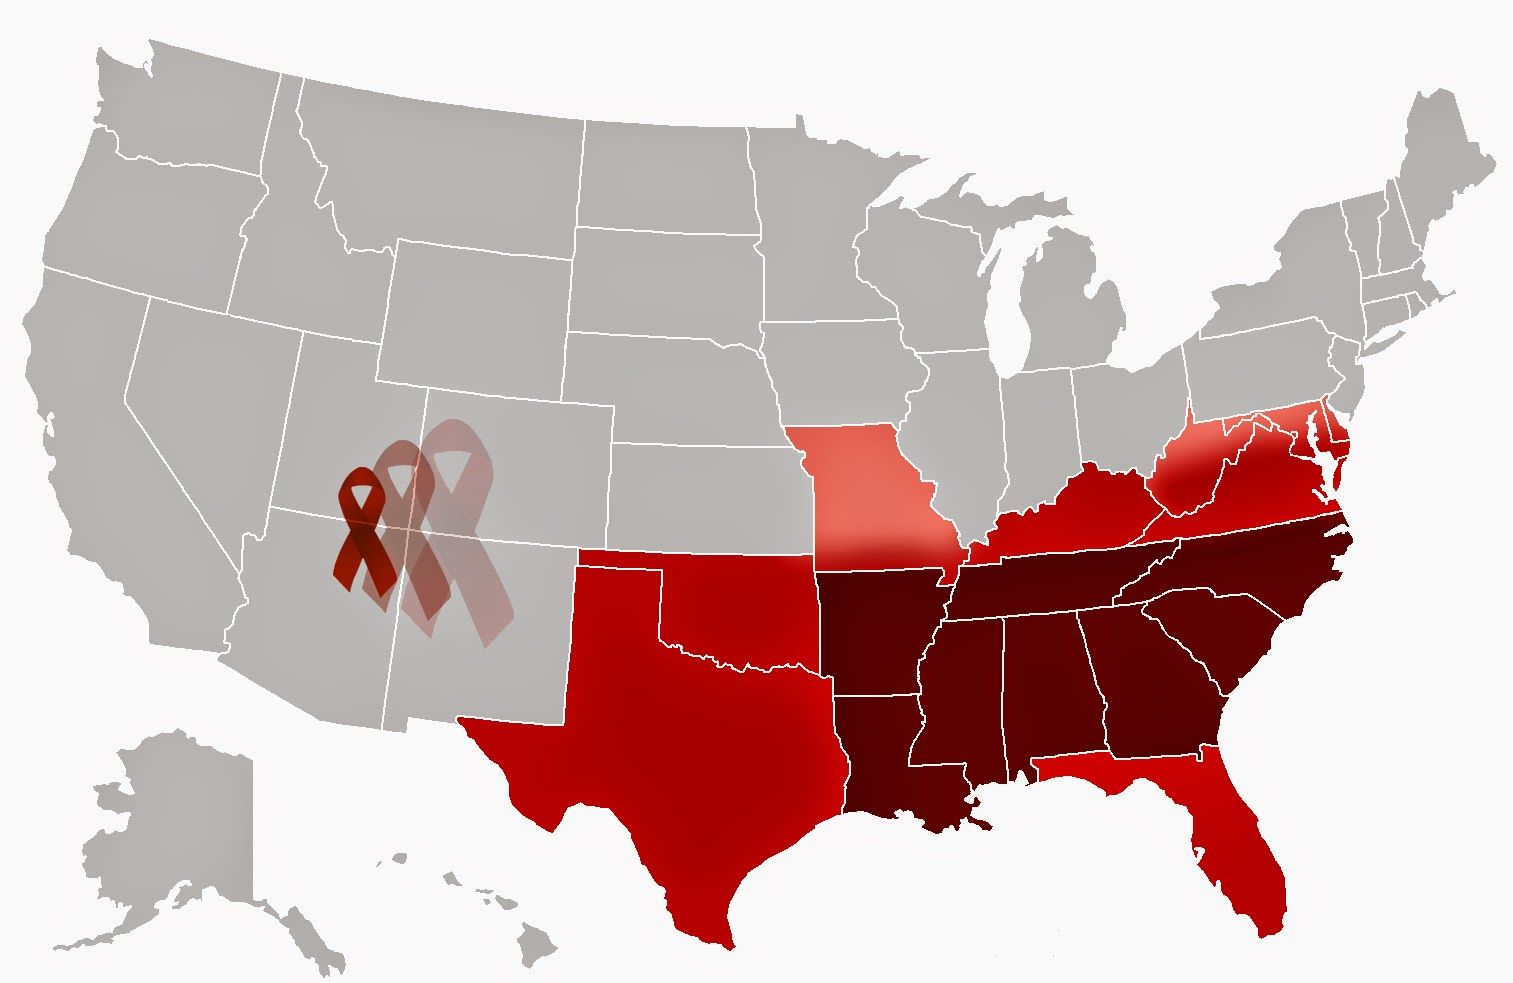 Map of the United States, with the southern states colored in red and the AIDS Ribbon moving toward these states.